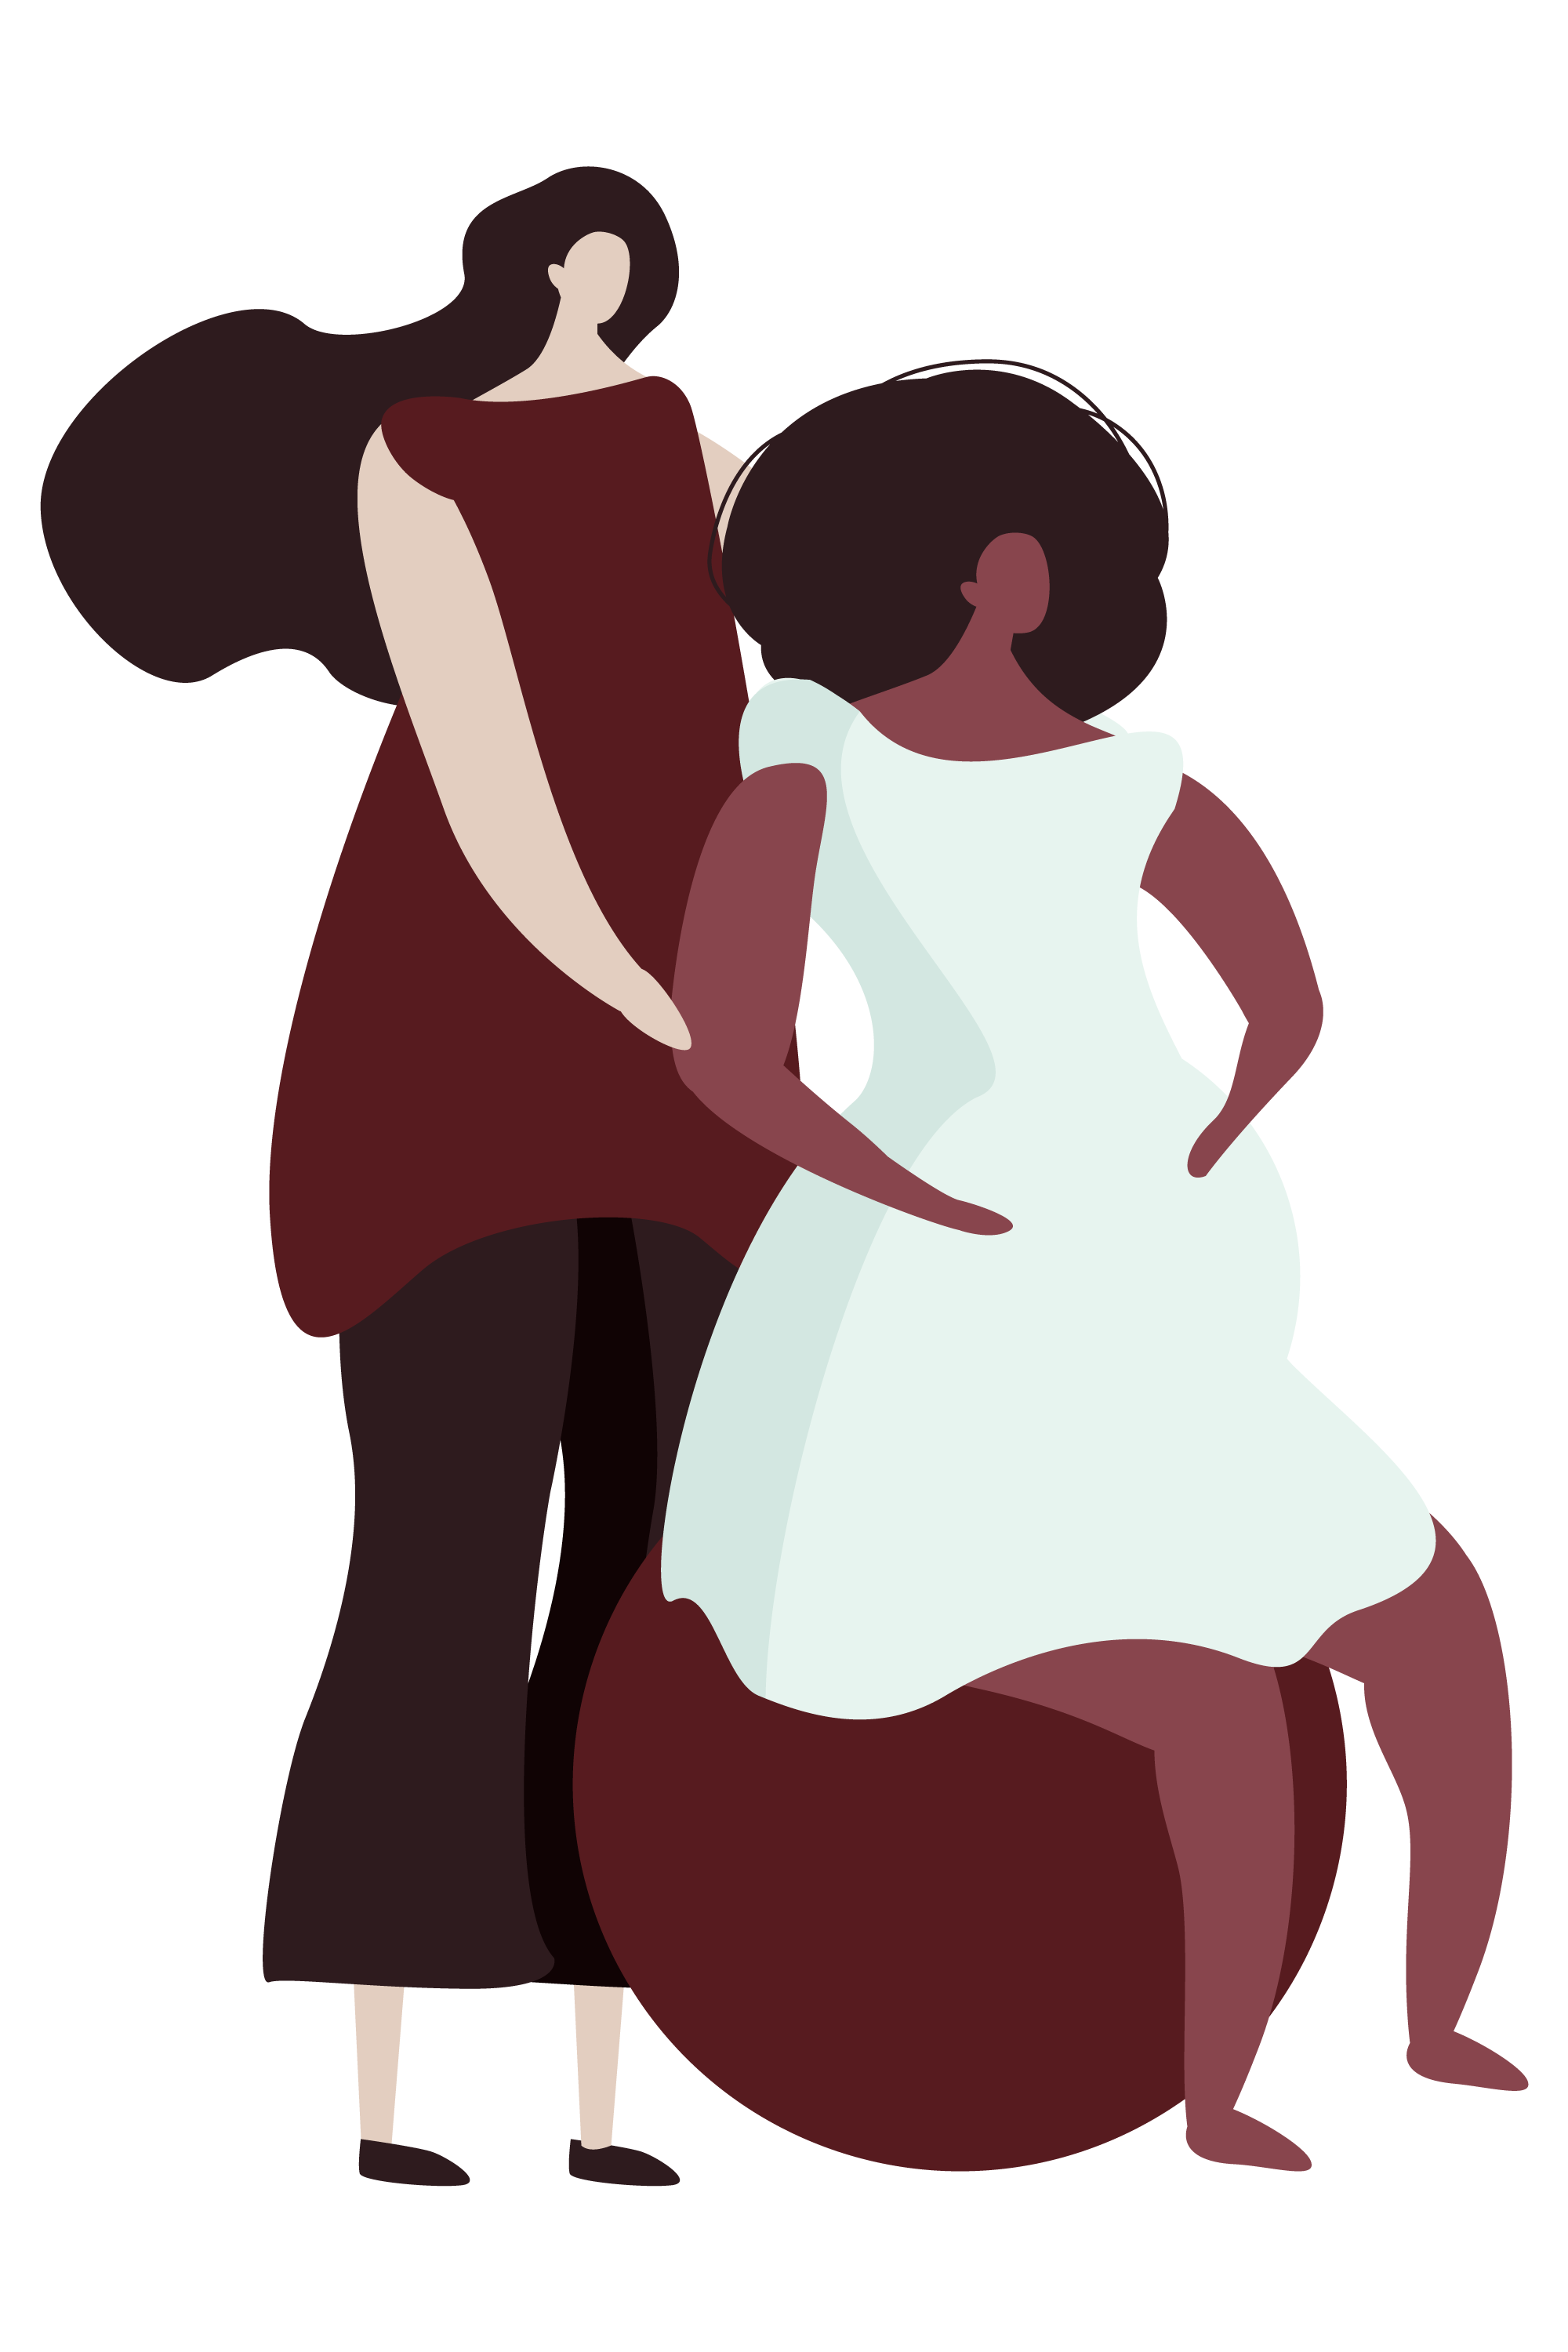 Illustration of birth doula support for parents.